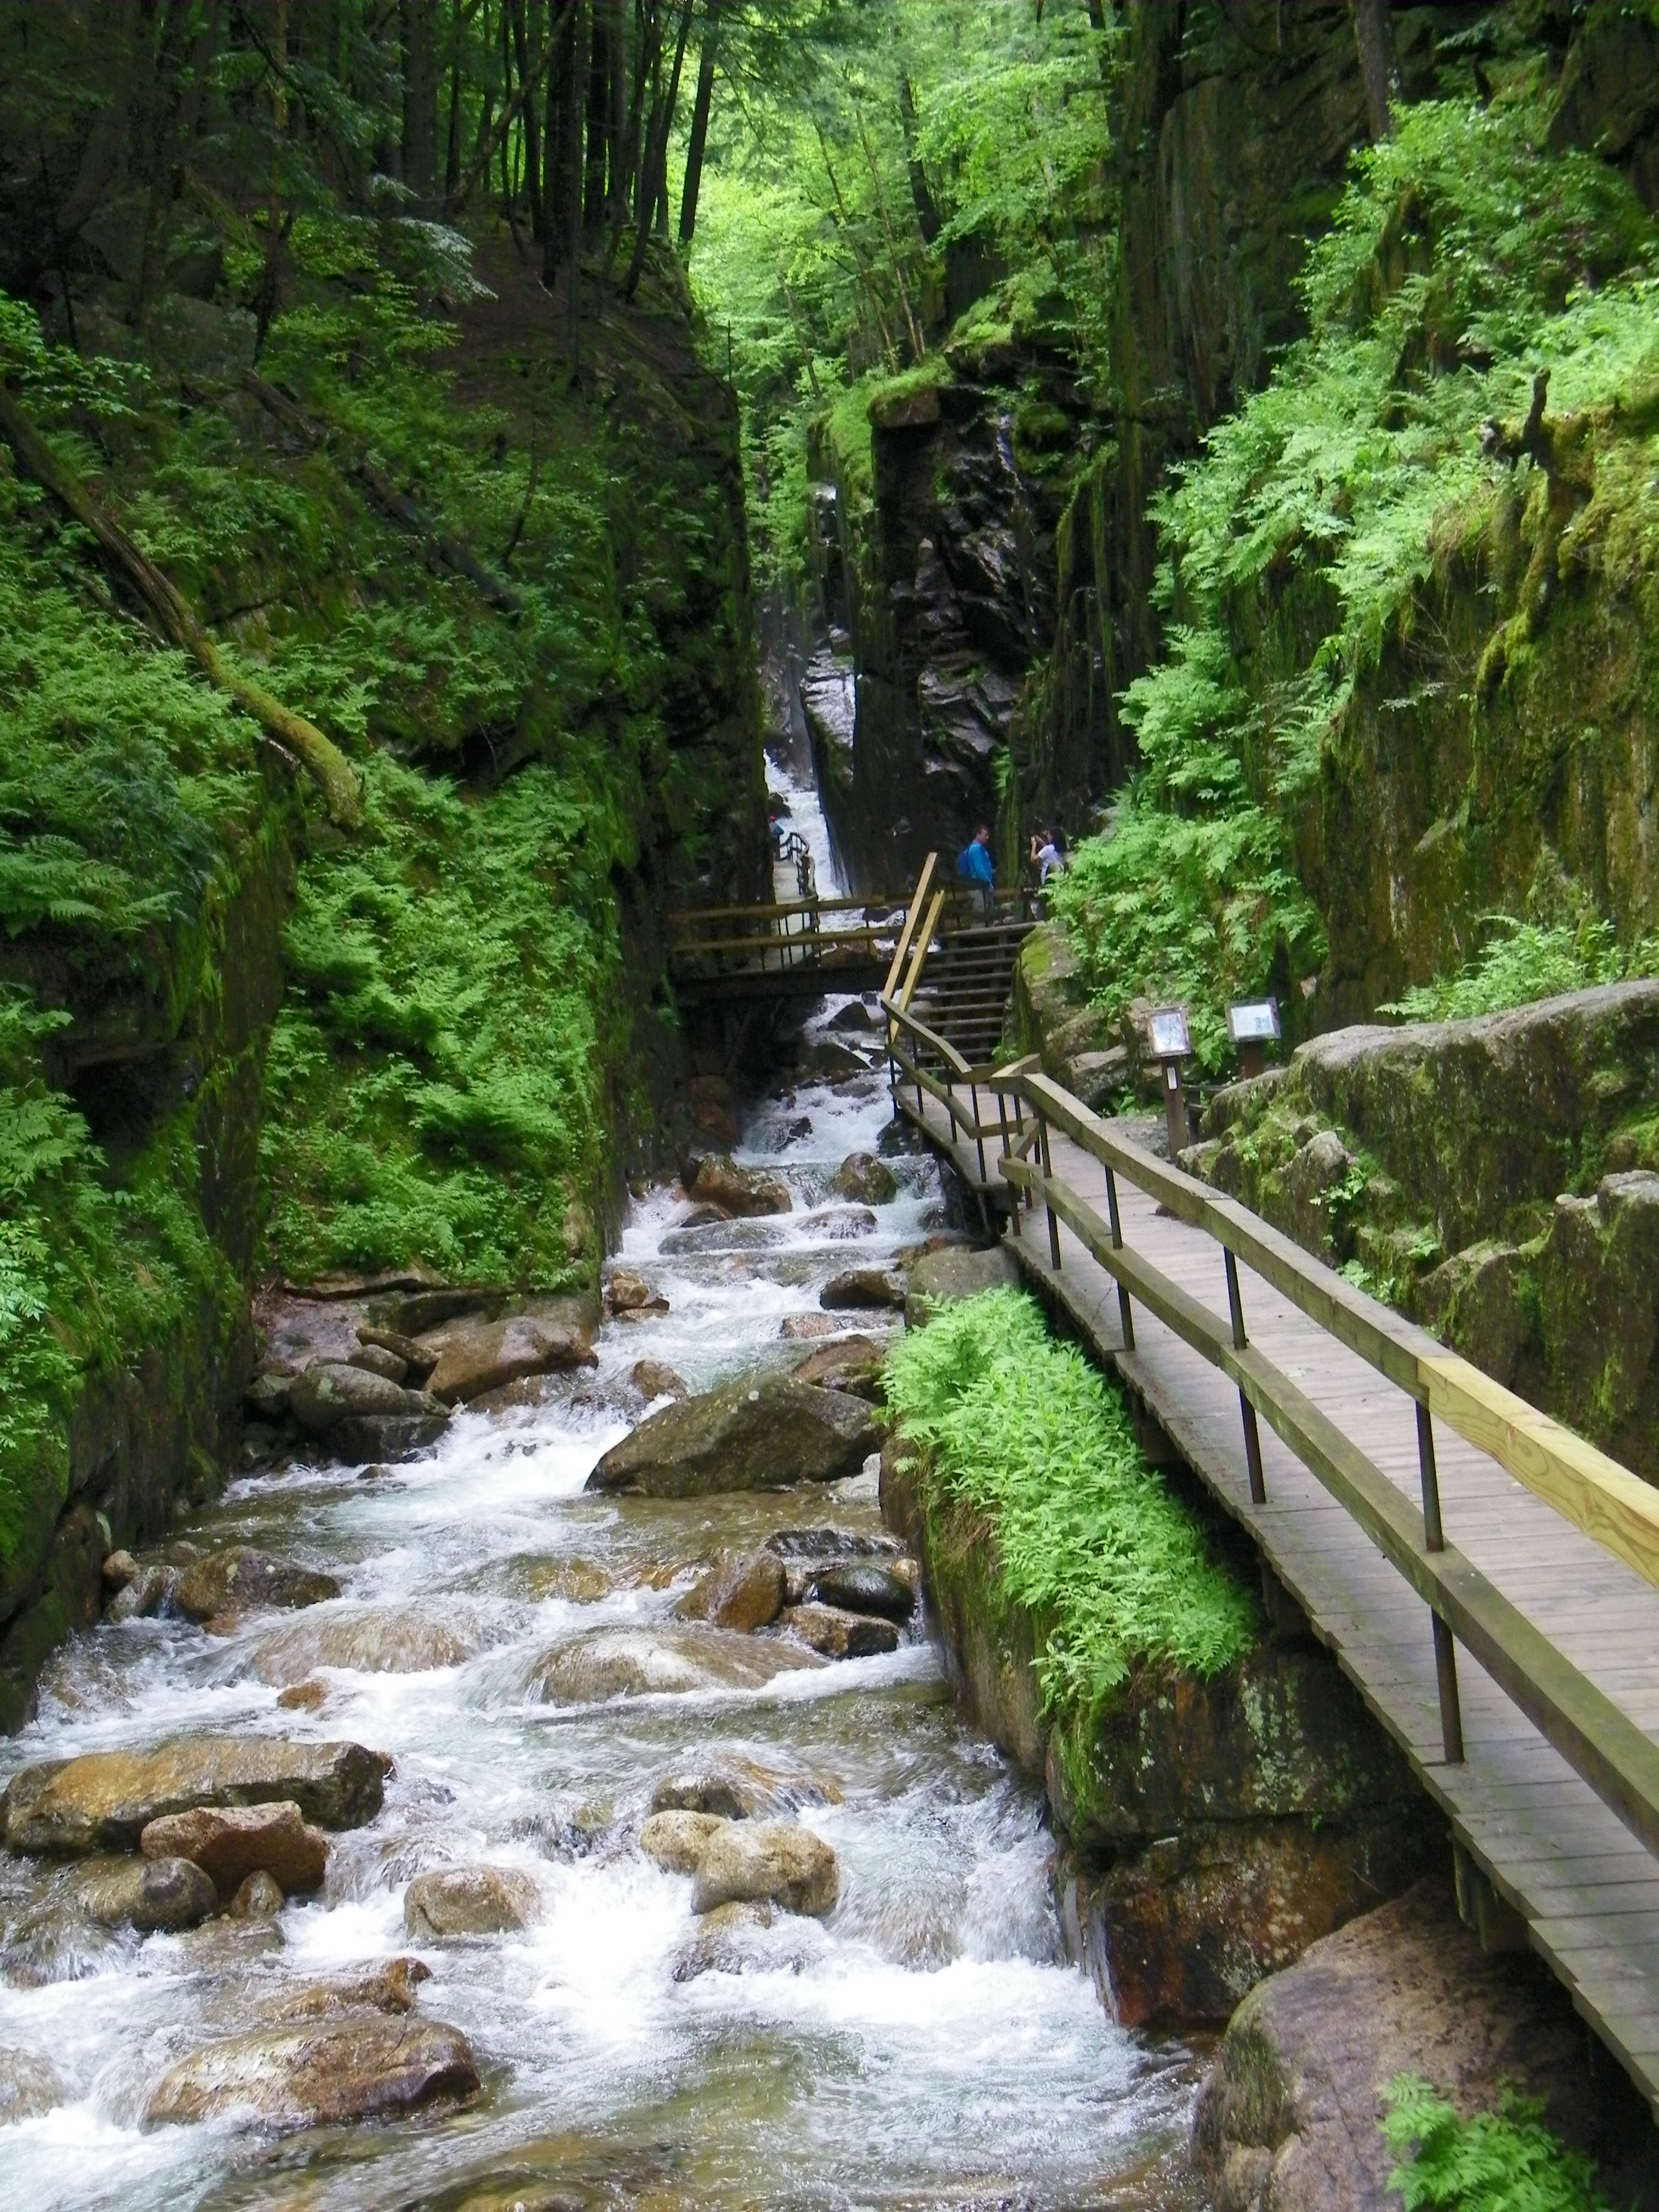 Franconia Notch State Park, north of Lincoln, NH